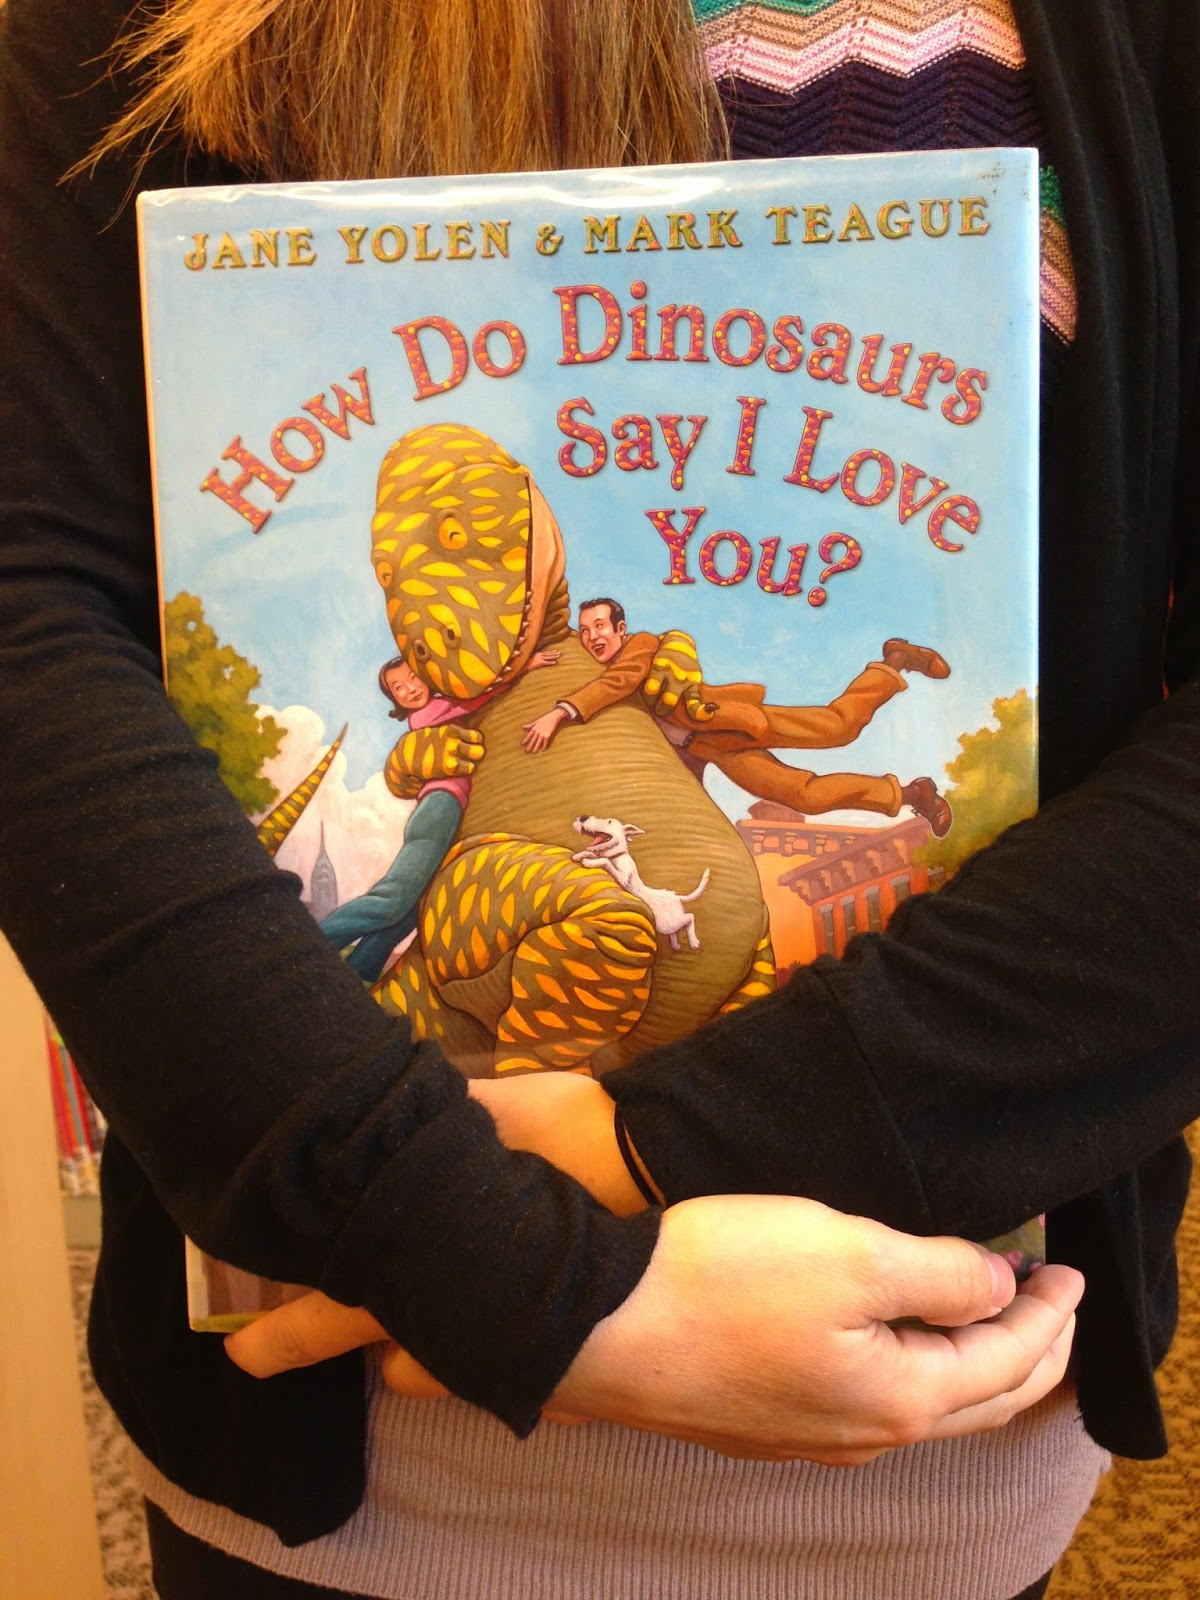 http://catalog.syossetlibrary.org/search?/thow+do+dinosaurs/thow+do+dinosaurs/1%2C14%2C17%2CB/frameset&FF=thow+do+dinosaurs+say+i+love+you&1%2C1%2C